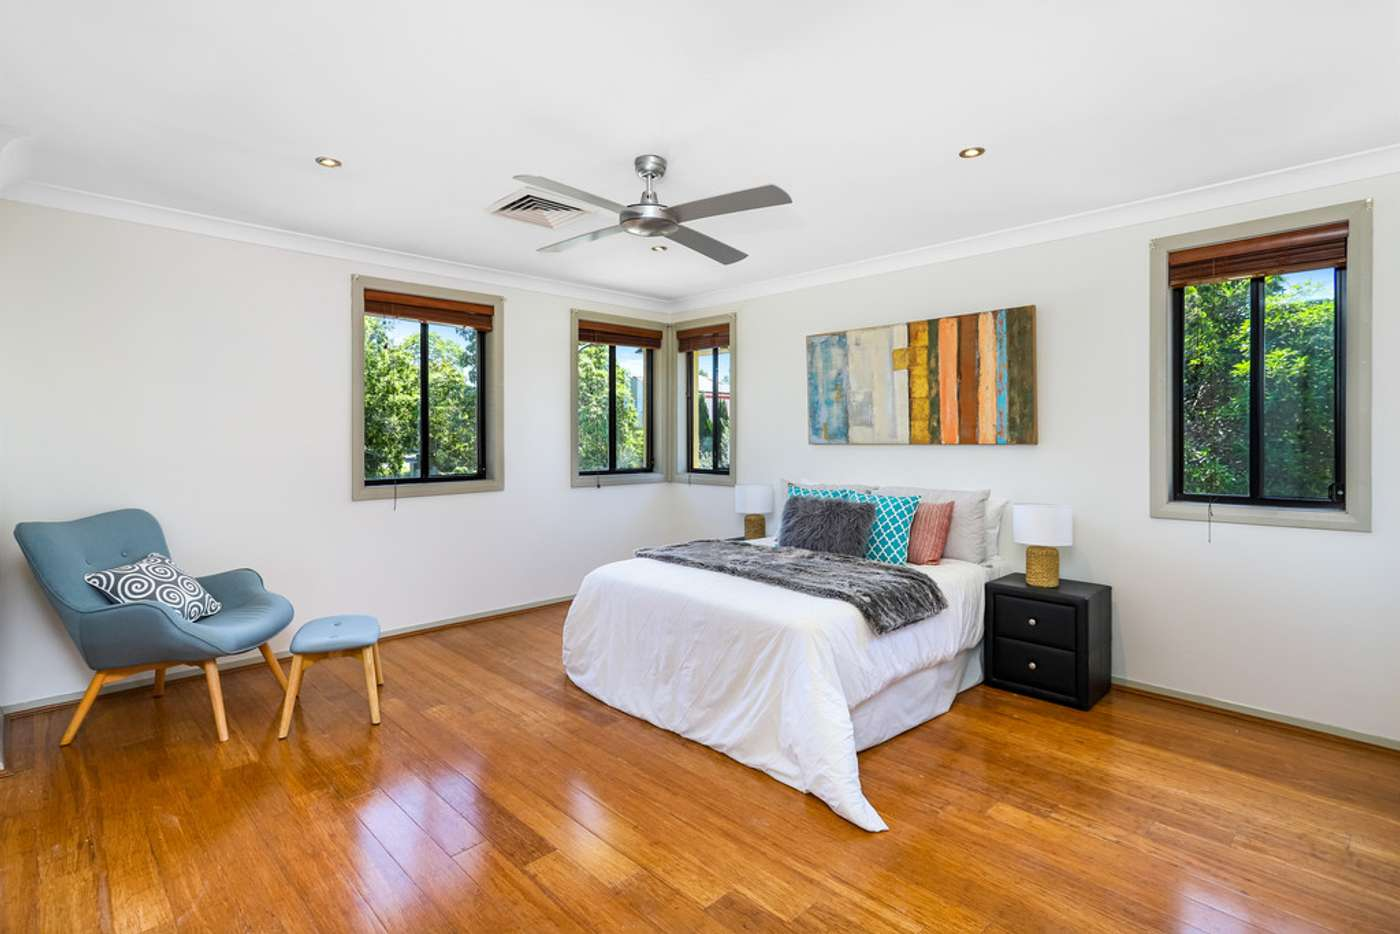 Seventh view of Homely house listing, 33 Darlington Street, Stanhope Gardens NSW 2768